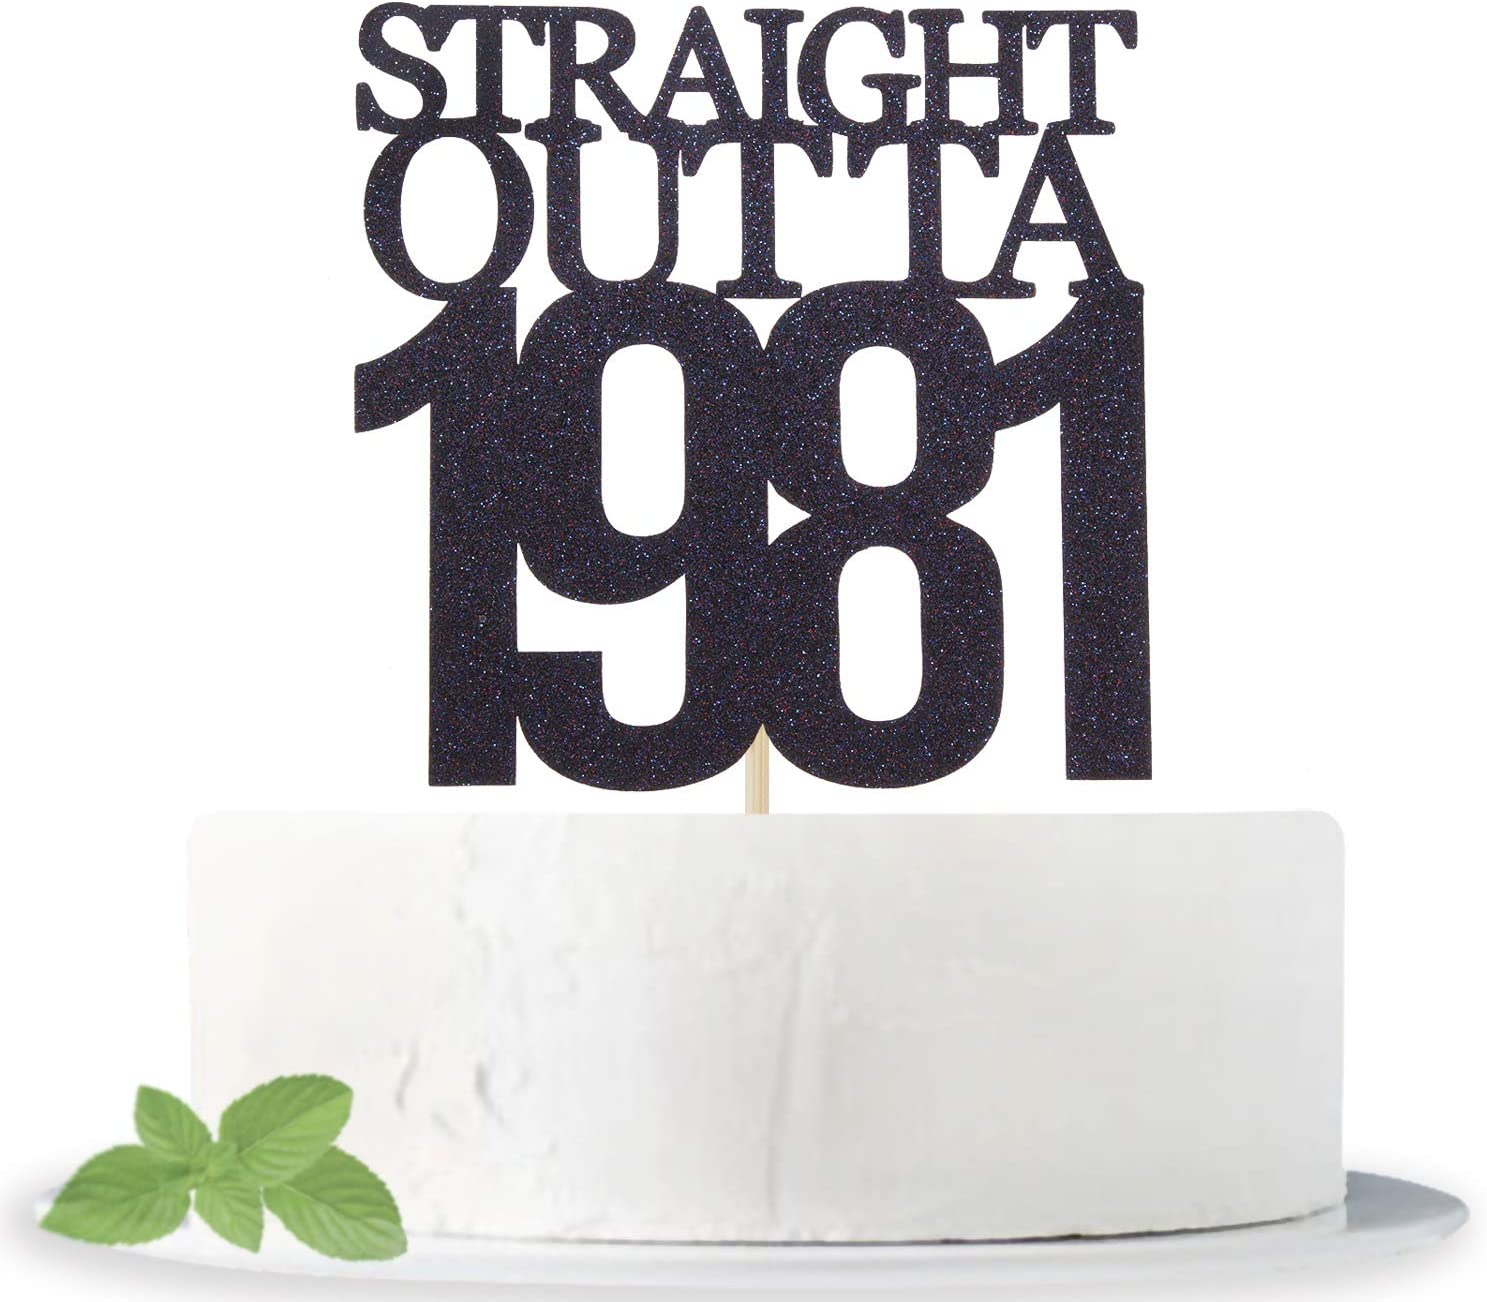 Black Glitter Straight Outta 1981 Cake Topper - Cheers to 40 Years - 40 and Fabulous Cake Topper - 40th Birthday/Wedding Anniversary Party Sign Decorations